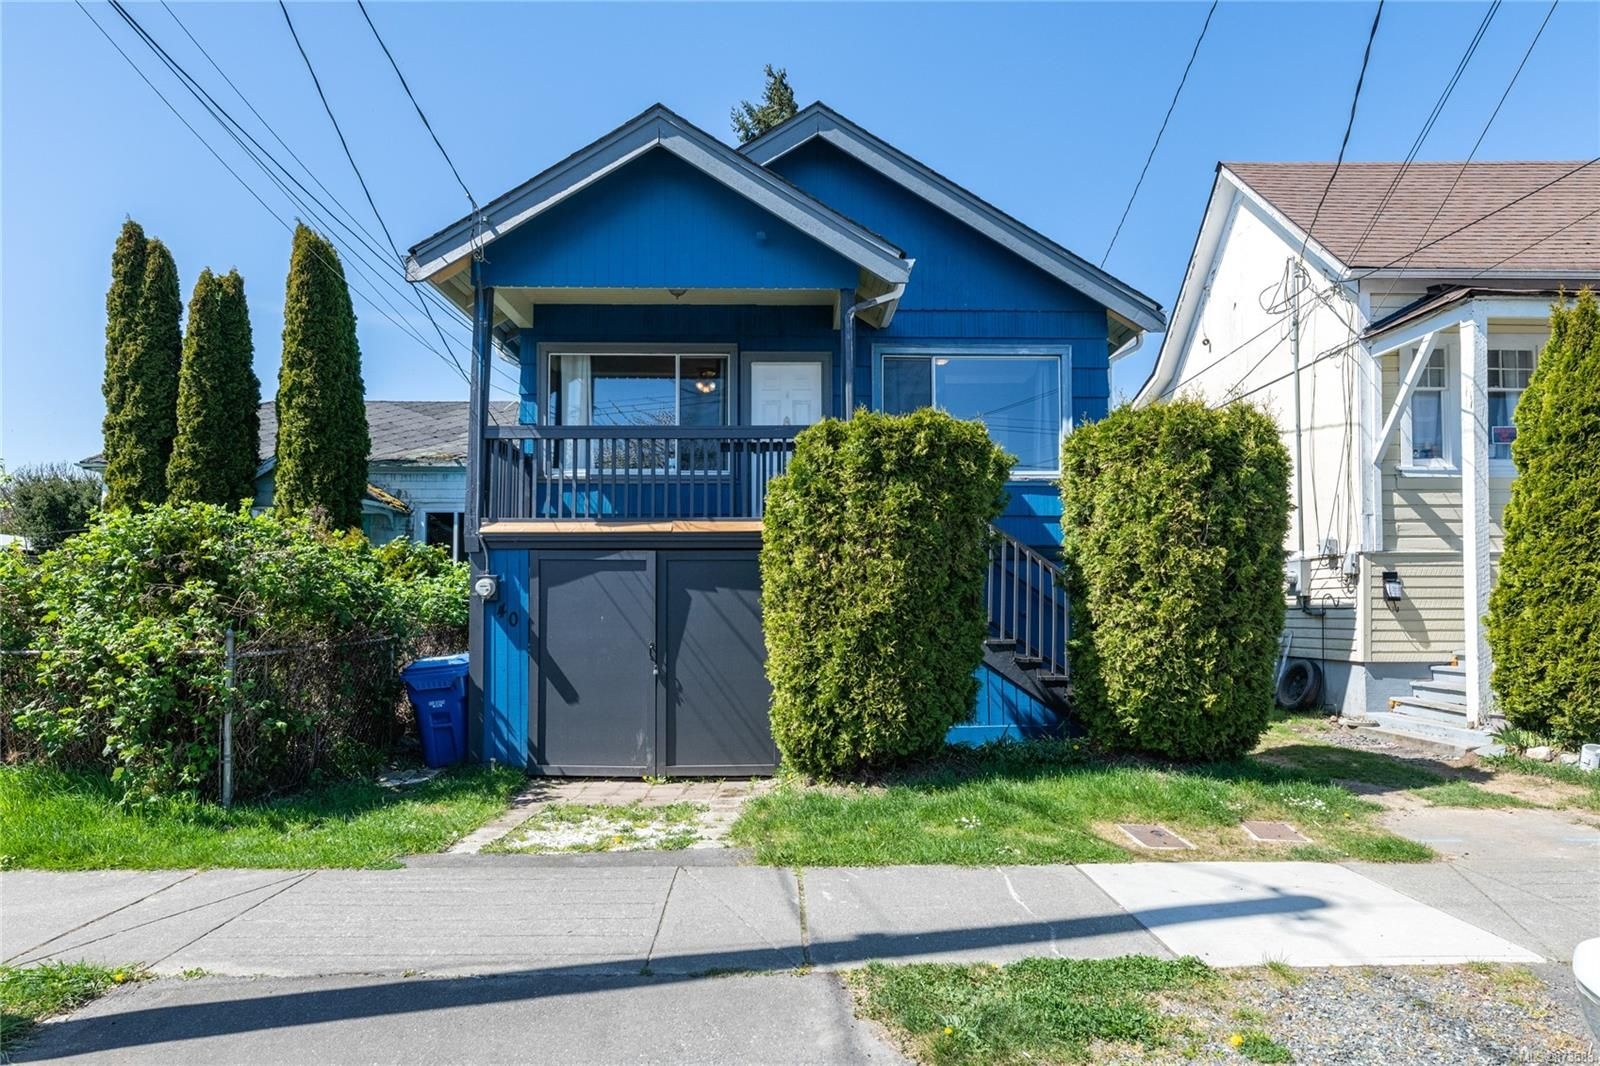 Main Photo: 40 Irwin St in : Na Old City House for sale (Nanaimo)  : MLS®# 873583